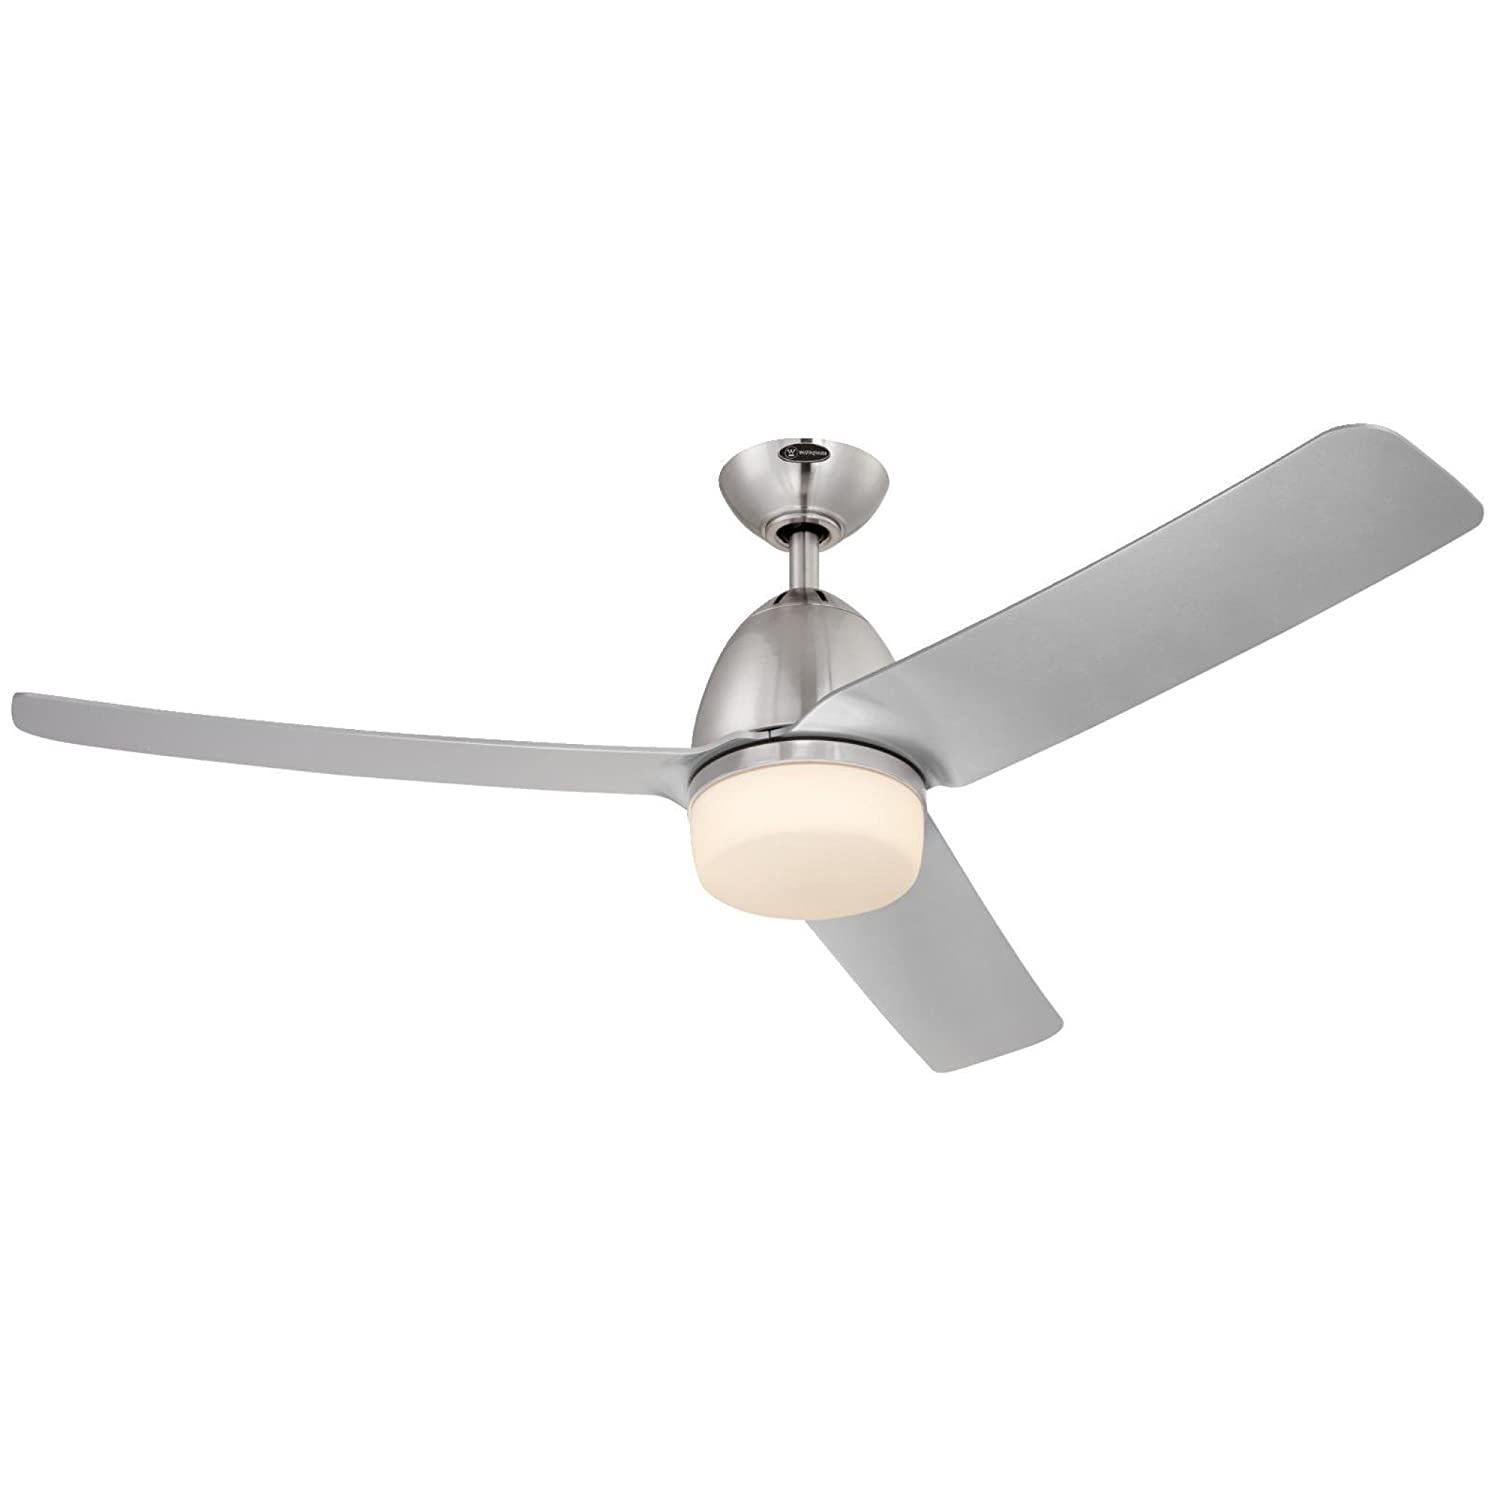 Westinghouse 7800100 Delancey Two-Light Three-Blade Indoor DC Motor Ceiling Fan with Opal Frosted Glass, 52-Inch, Brushed Chrome Finish - - Amazon.com